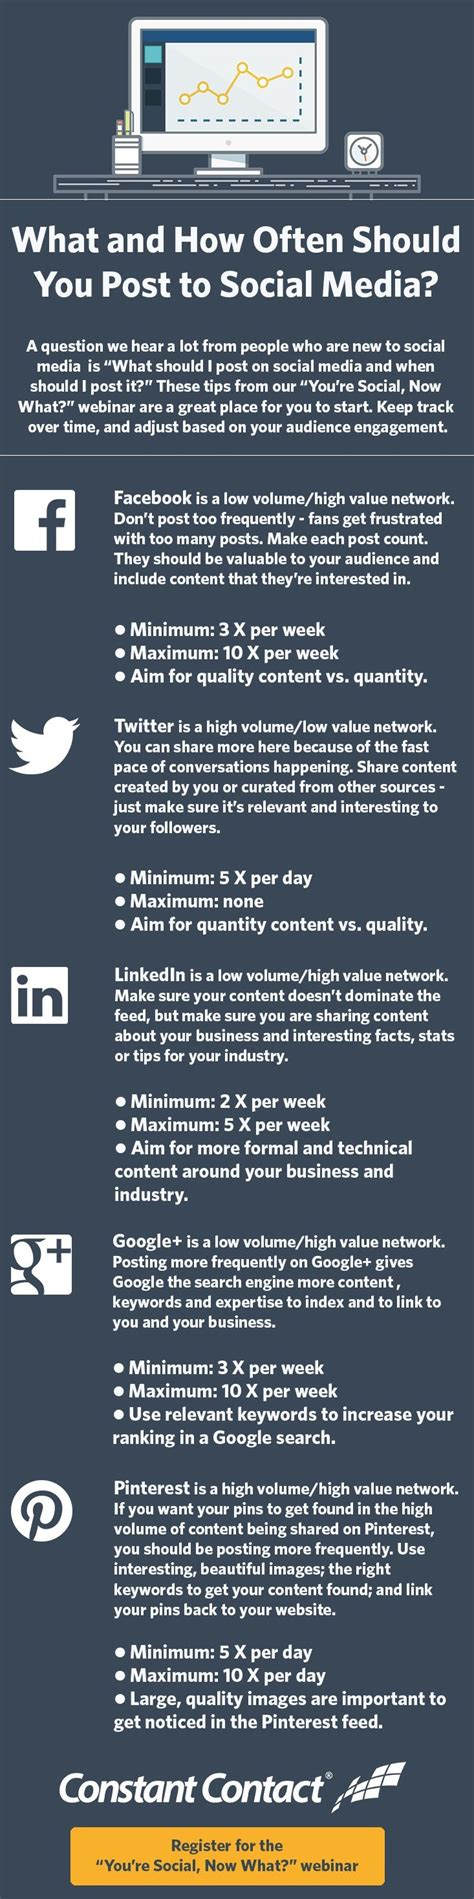 related stories what and when to post on social media infographic